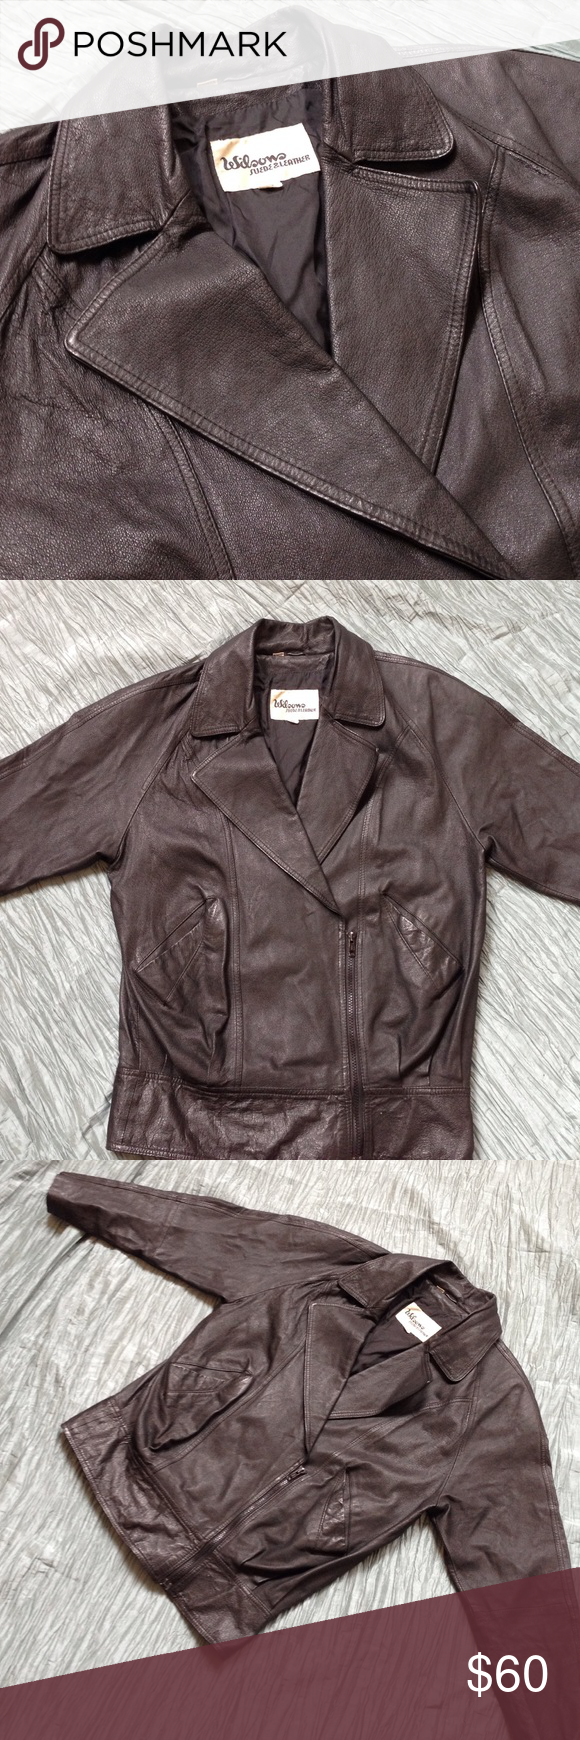 Wilsons Leather jacket 100 genuine leather. Inner lining